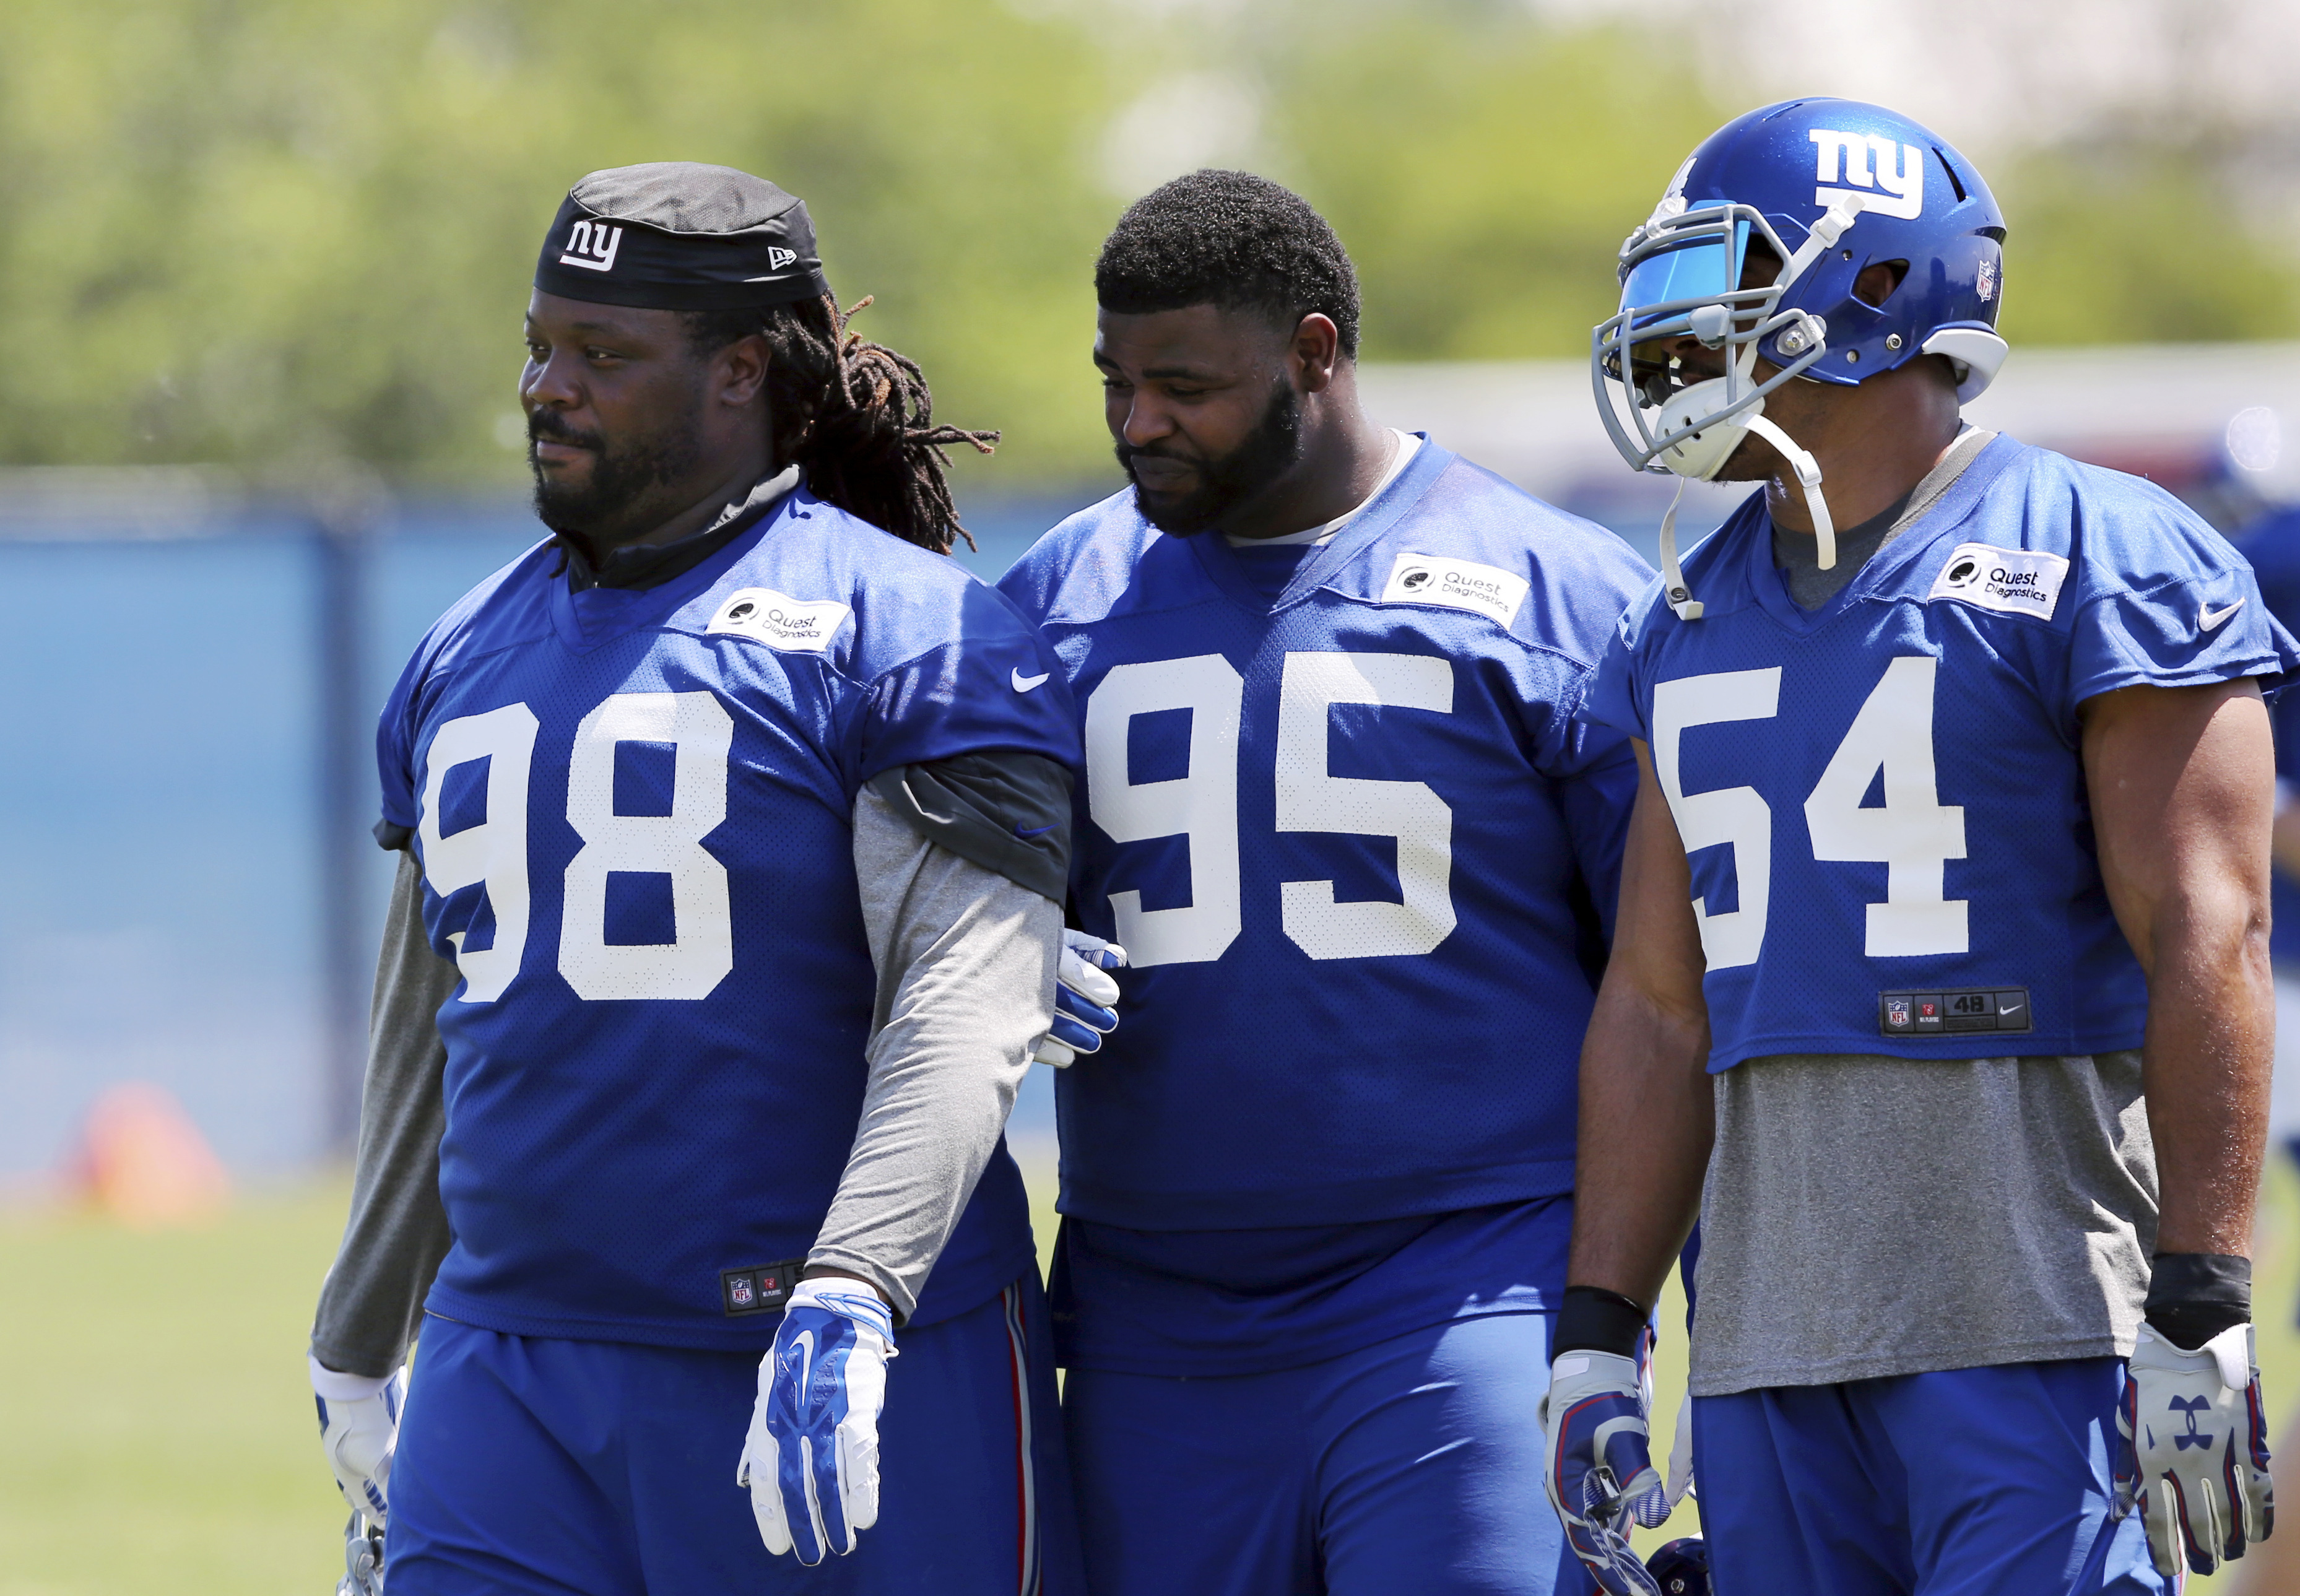 New York Giants defensive tackles Damon Harrison (98) and Johnathan Hankins (95) walk on the field with defensive end Olivier Vernon (54) during NFL football practice Monday, May 23, 2016 in East Rutherford, N.J. (AP Photo/Mel Evans)